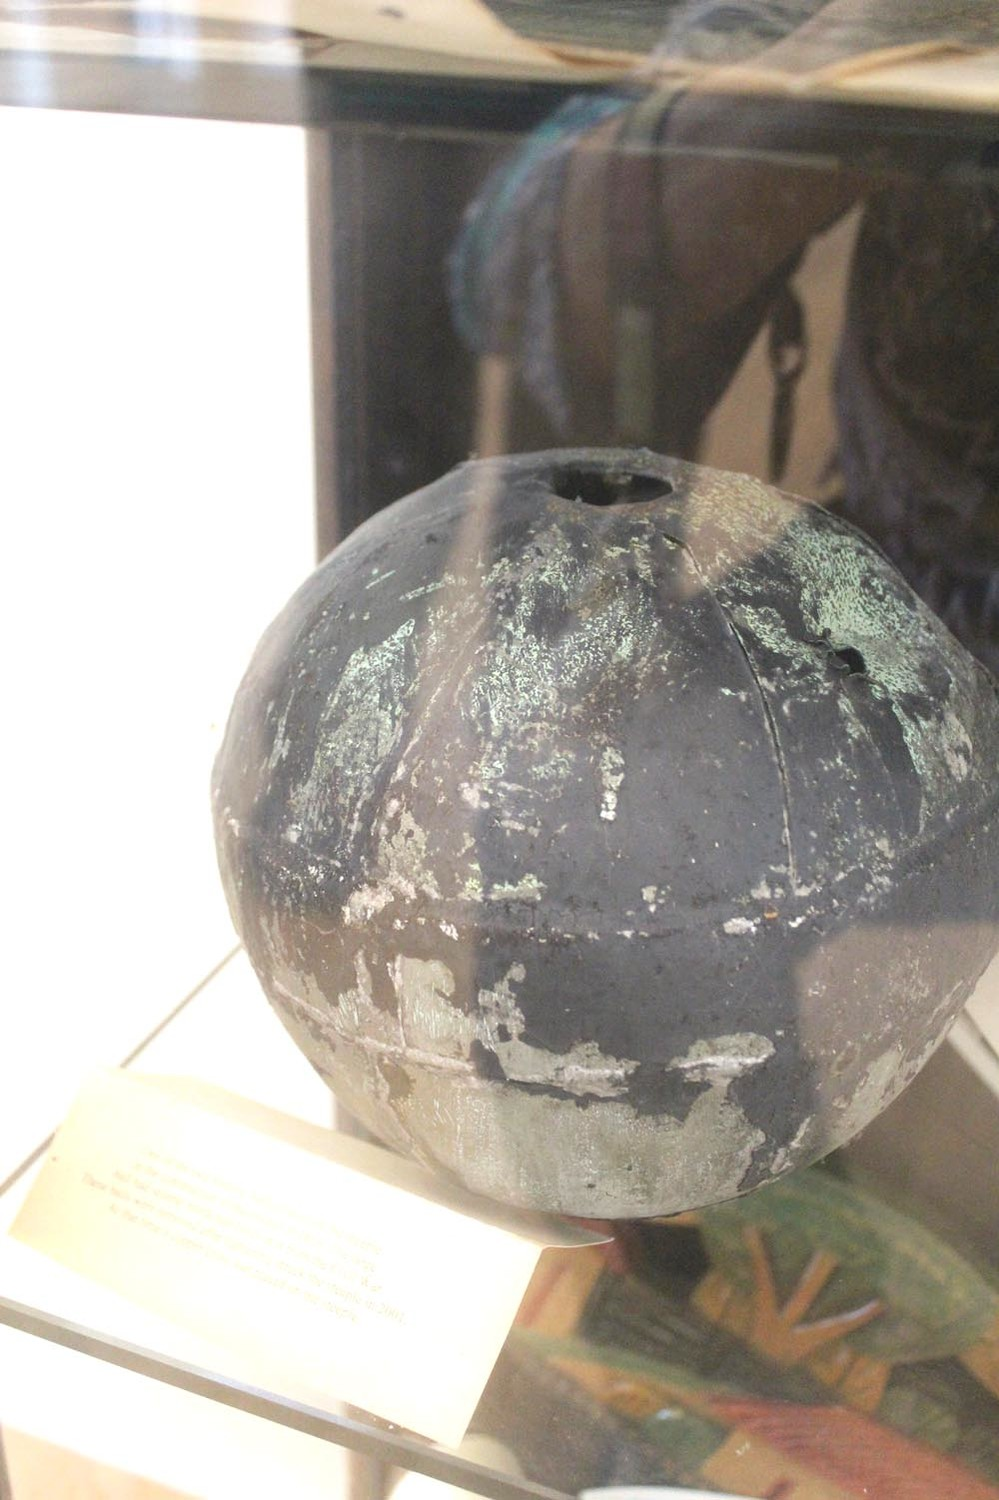 This ball was taken from the top of First Presbyterian after a lightning strike  in 2001.